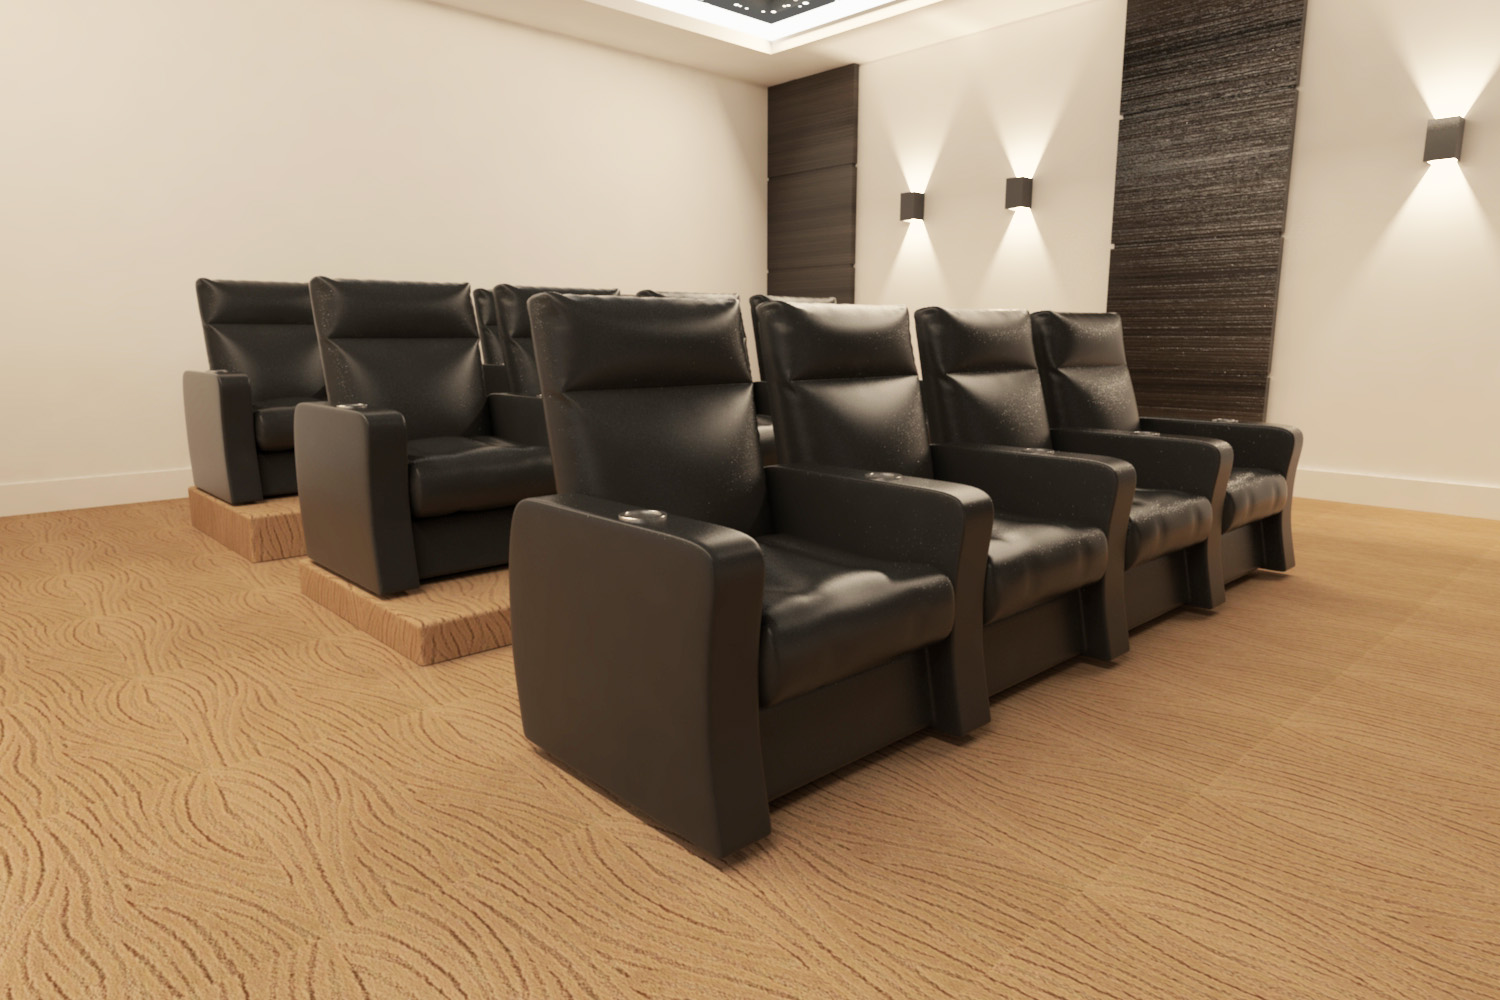 Theatre room armchairs